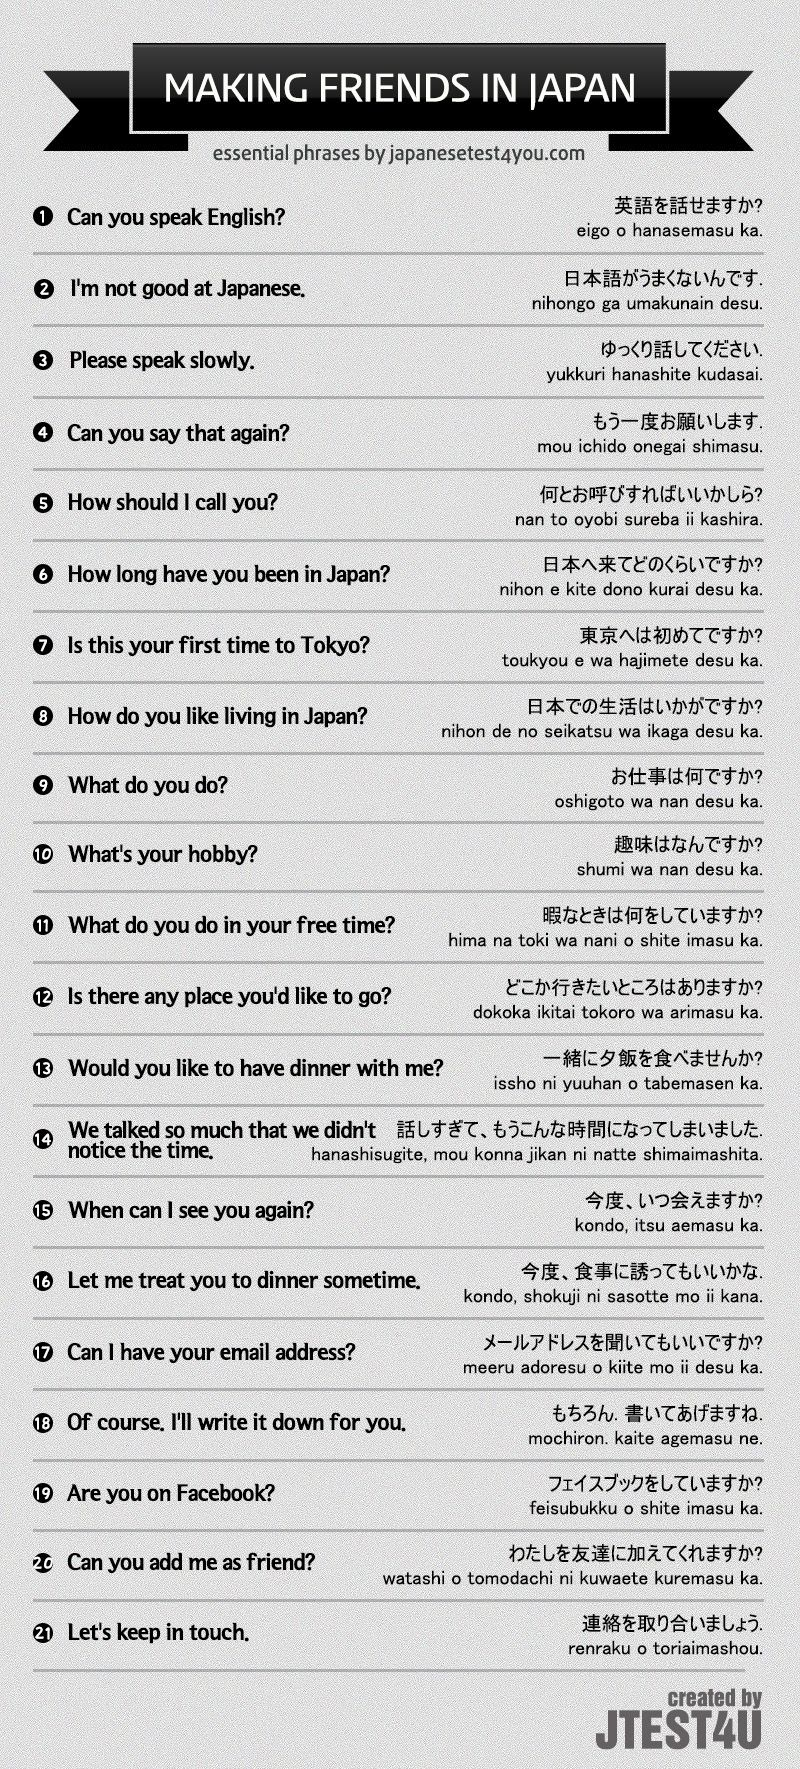 What can i call you in japanese